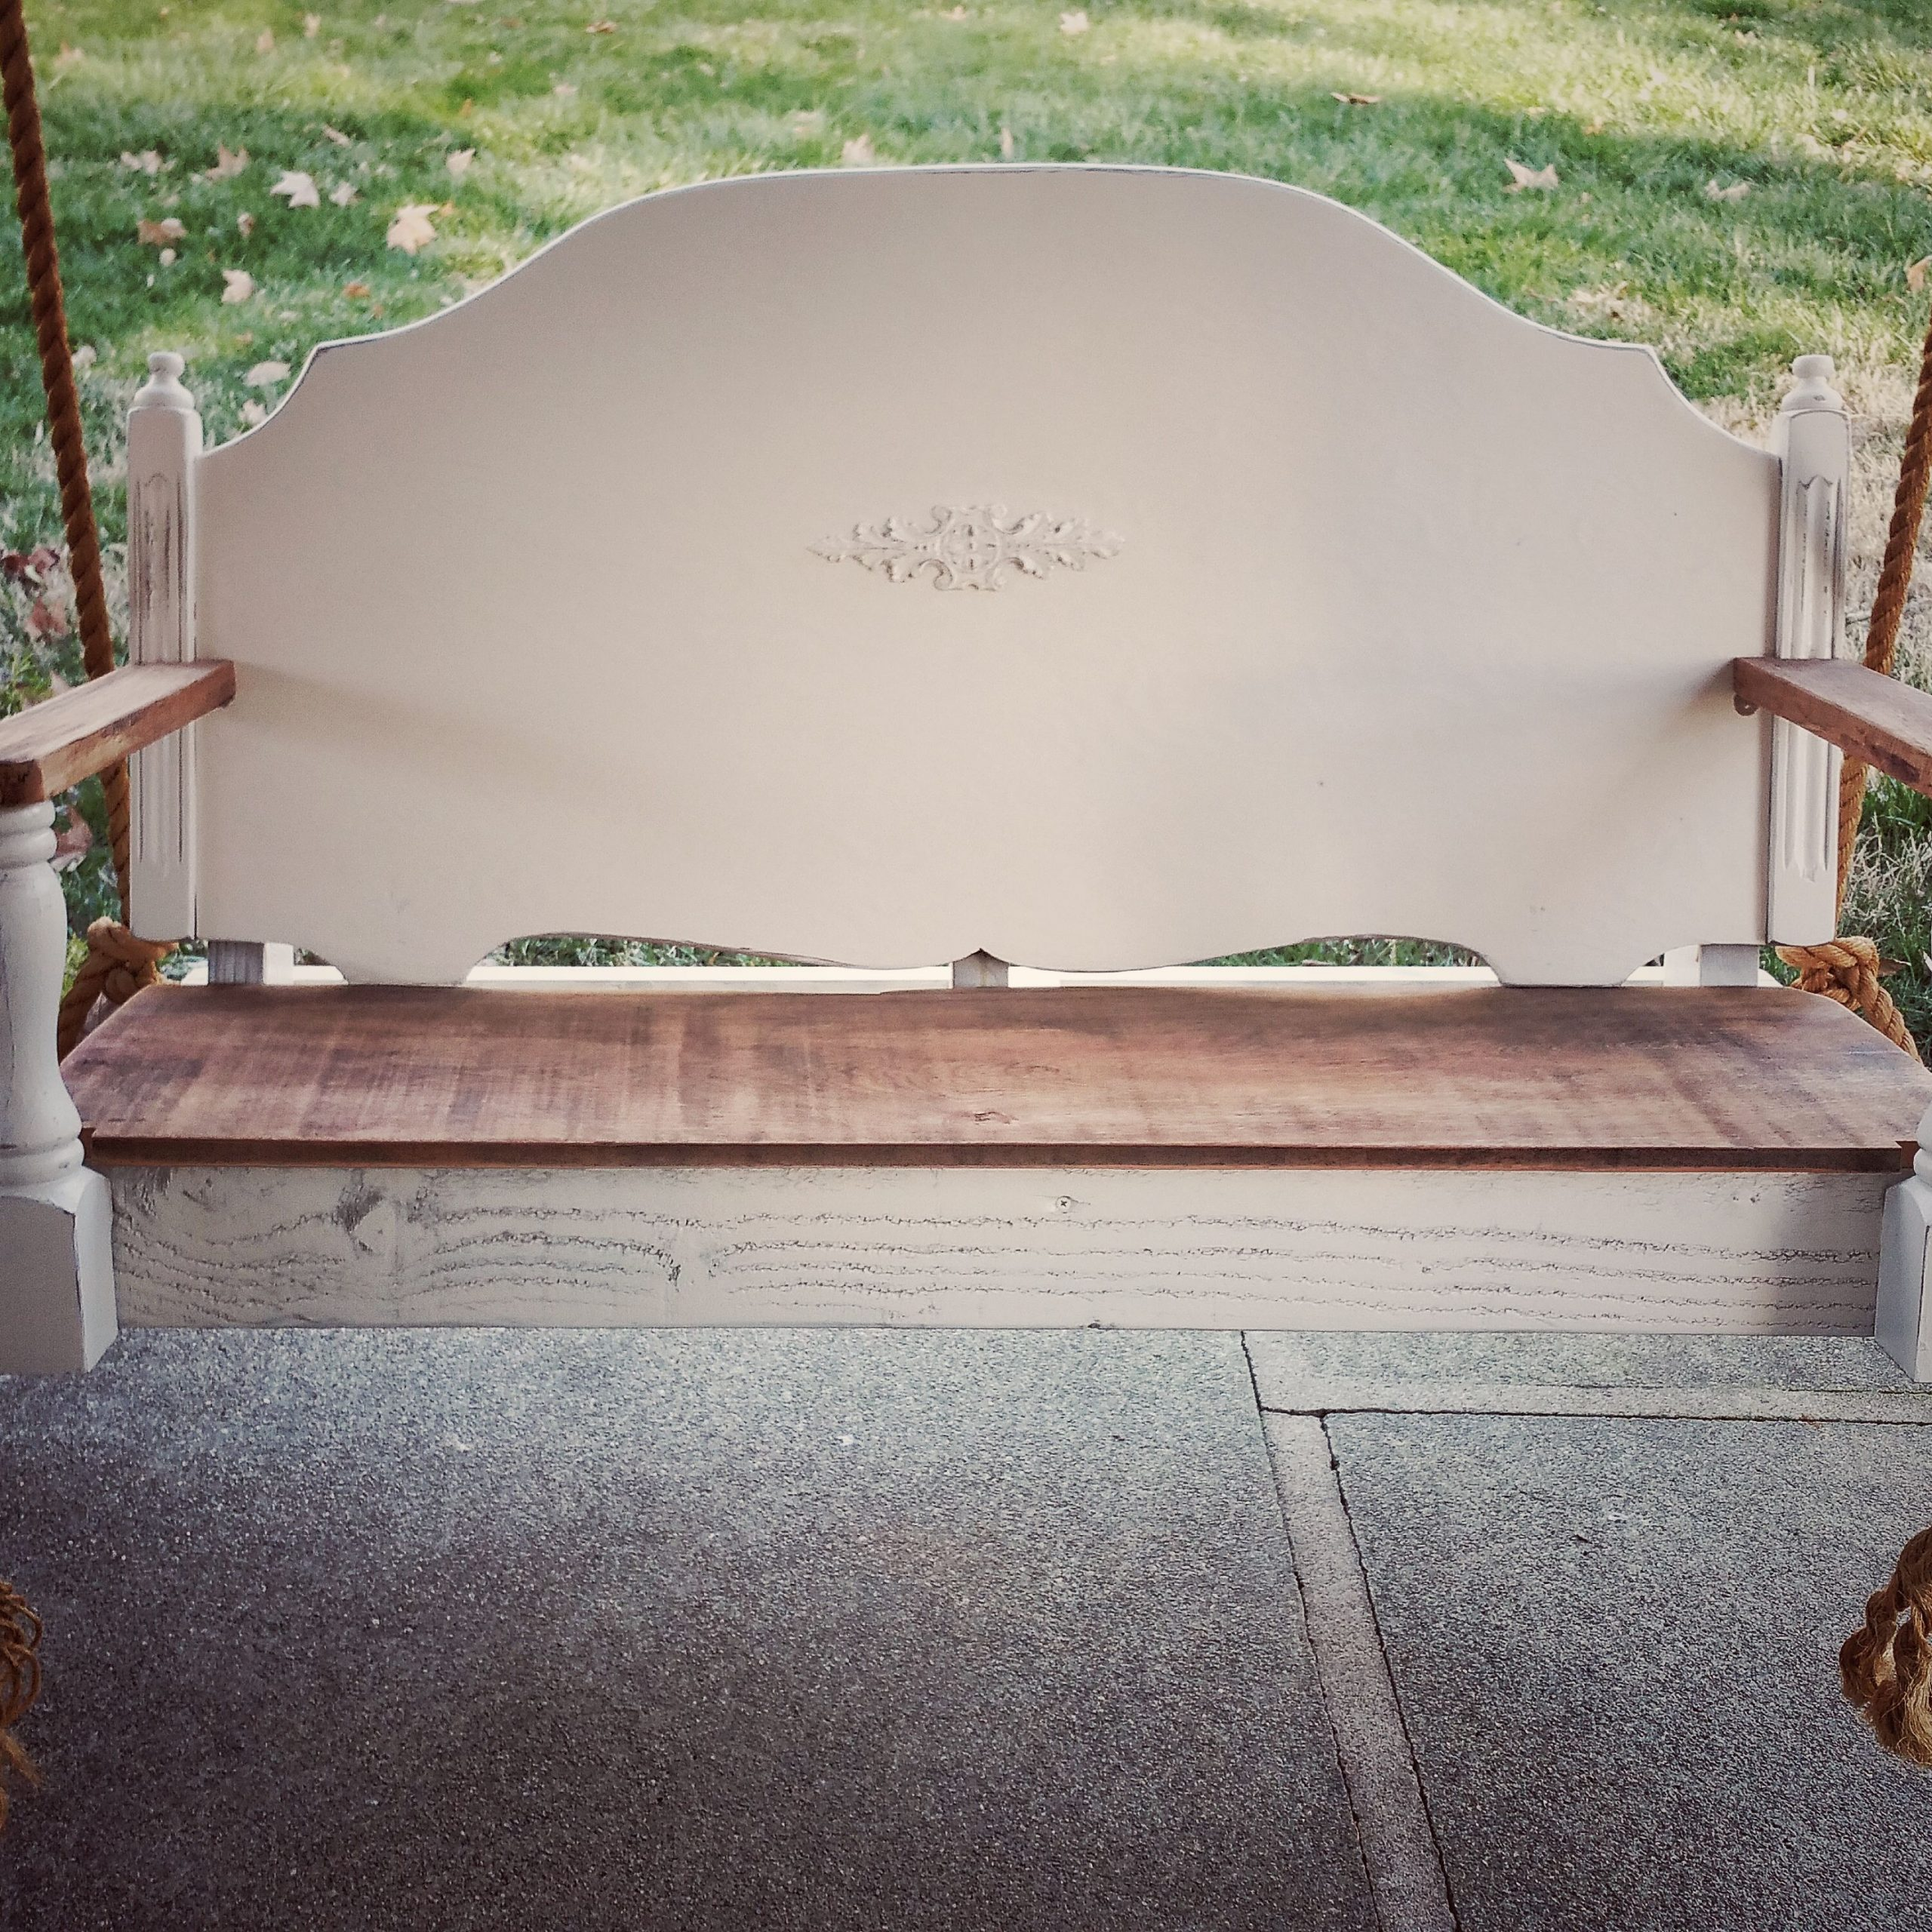 Repurposed Porch Swing Made From A Vintage Headboard, Seat Within Classic Porch Swings (Image 20 of 25)